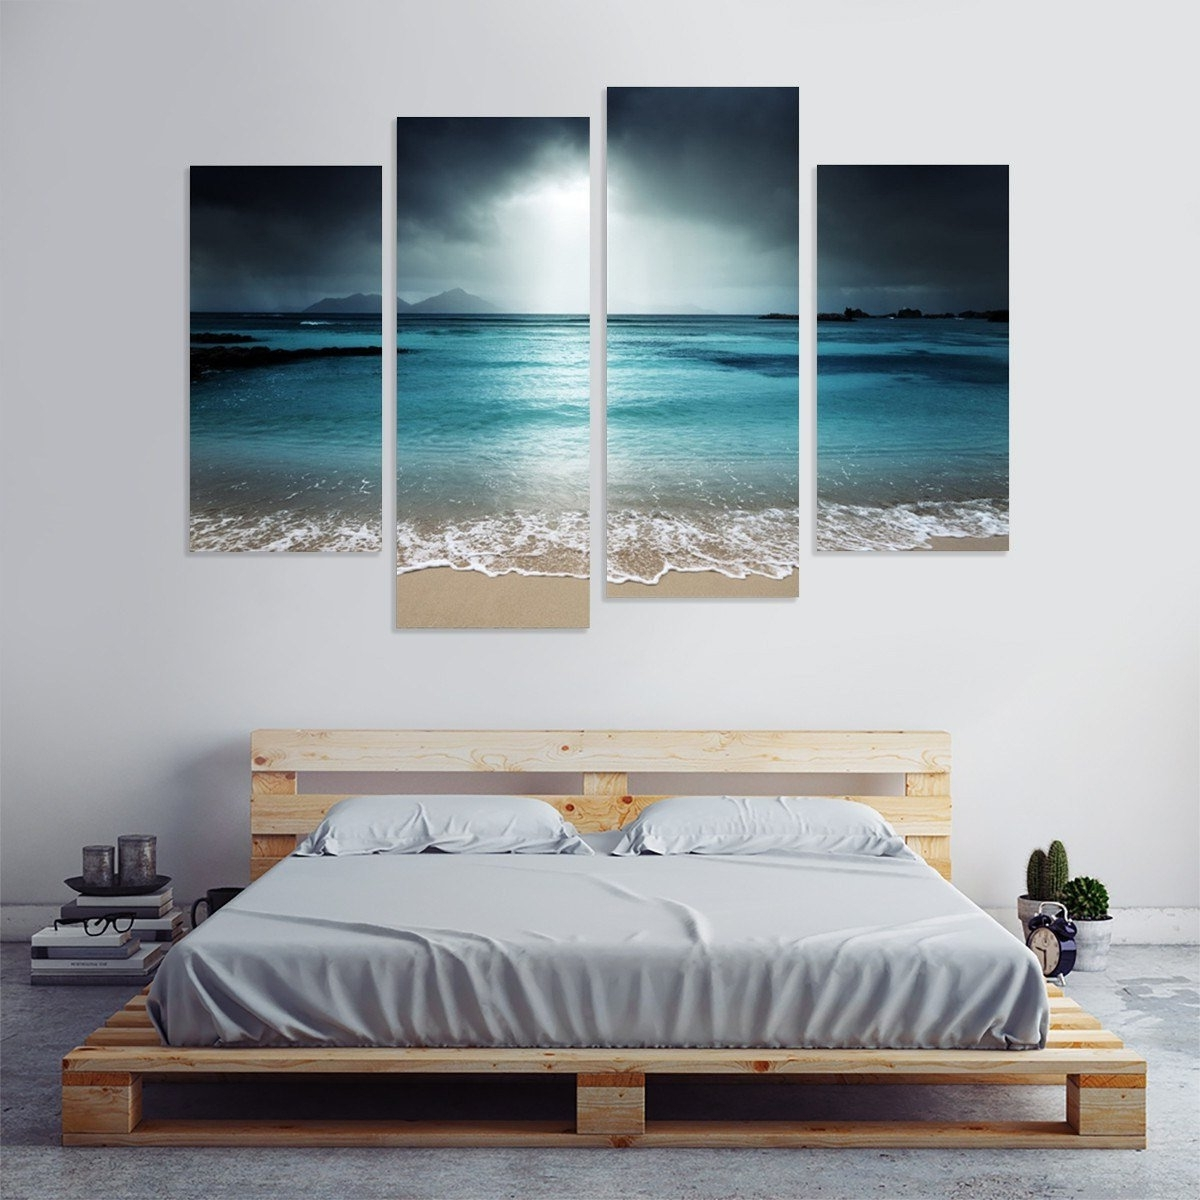 4 Piece Wall Art Sets Throughout Most Current Wall Art Designs 4 Piece Canvas Wall Art 4 Piece Wall Art Modern (View 5 of 15)